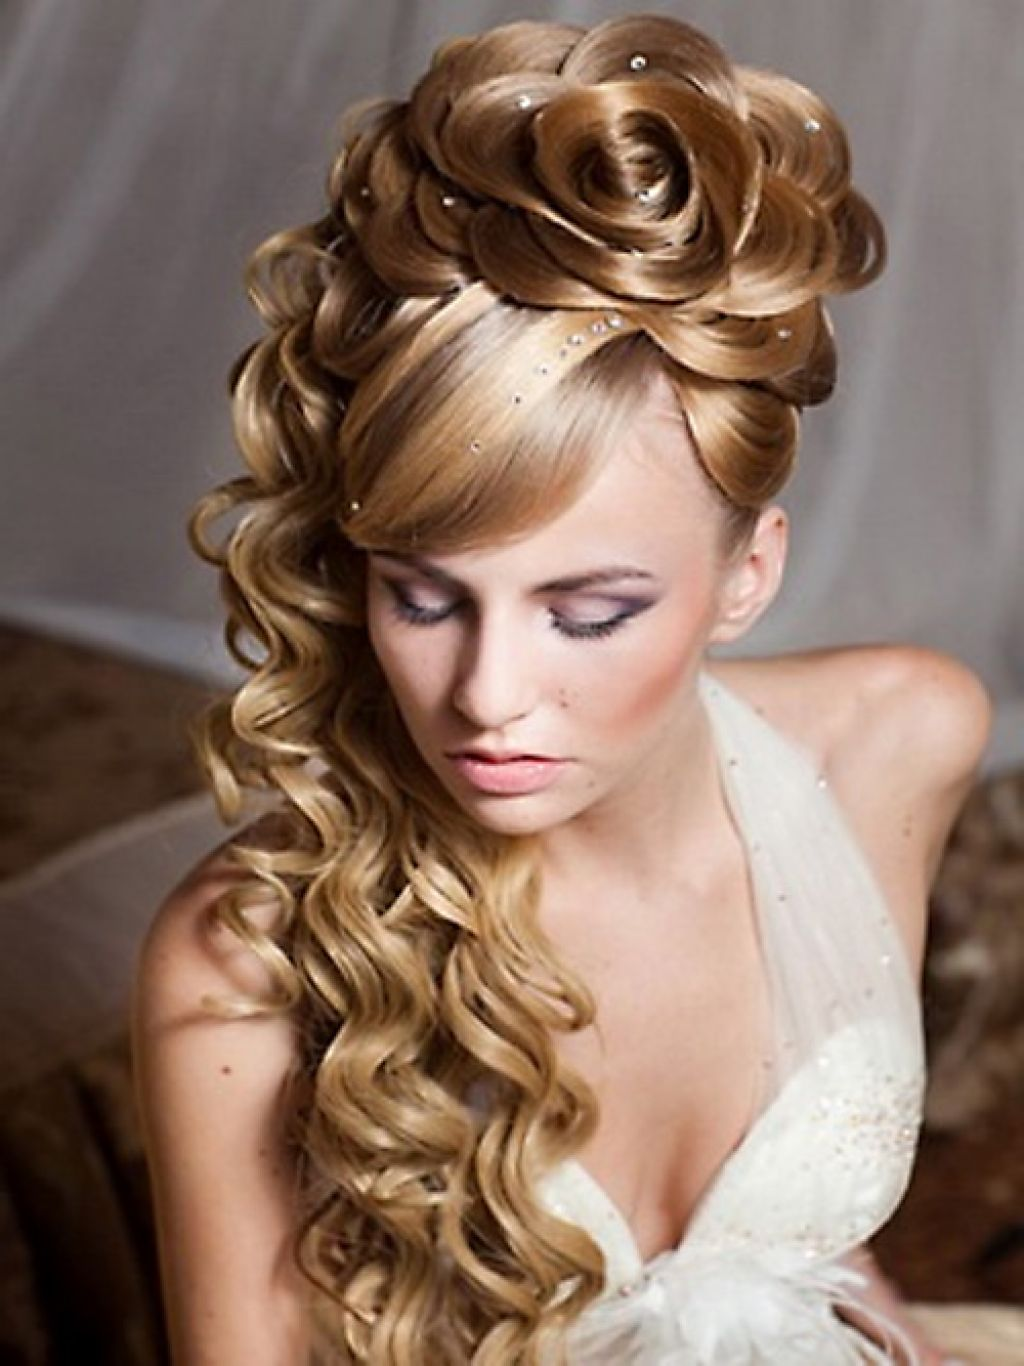 Hairstyles For Long Hair Cute : 25 Prom Hairstyles For Long Hair Braid